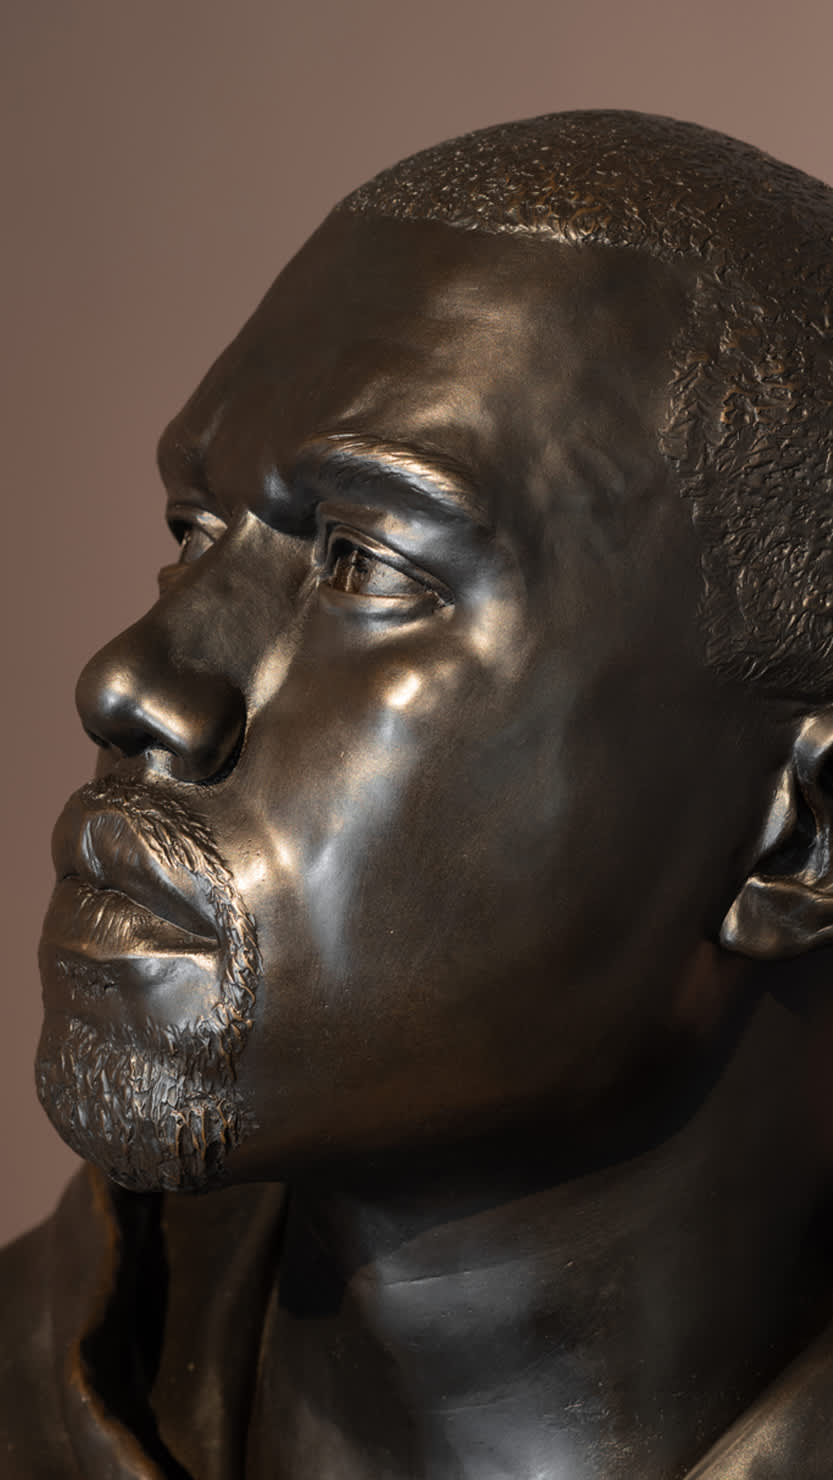 Side profile of Kanye, 2015 by Kehinde Wiley on display in Plymouth's Levinsky Gallery, autumn 2020